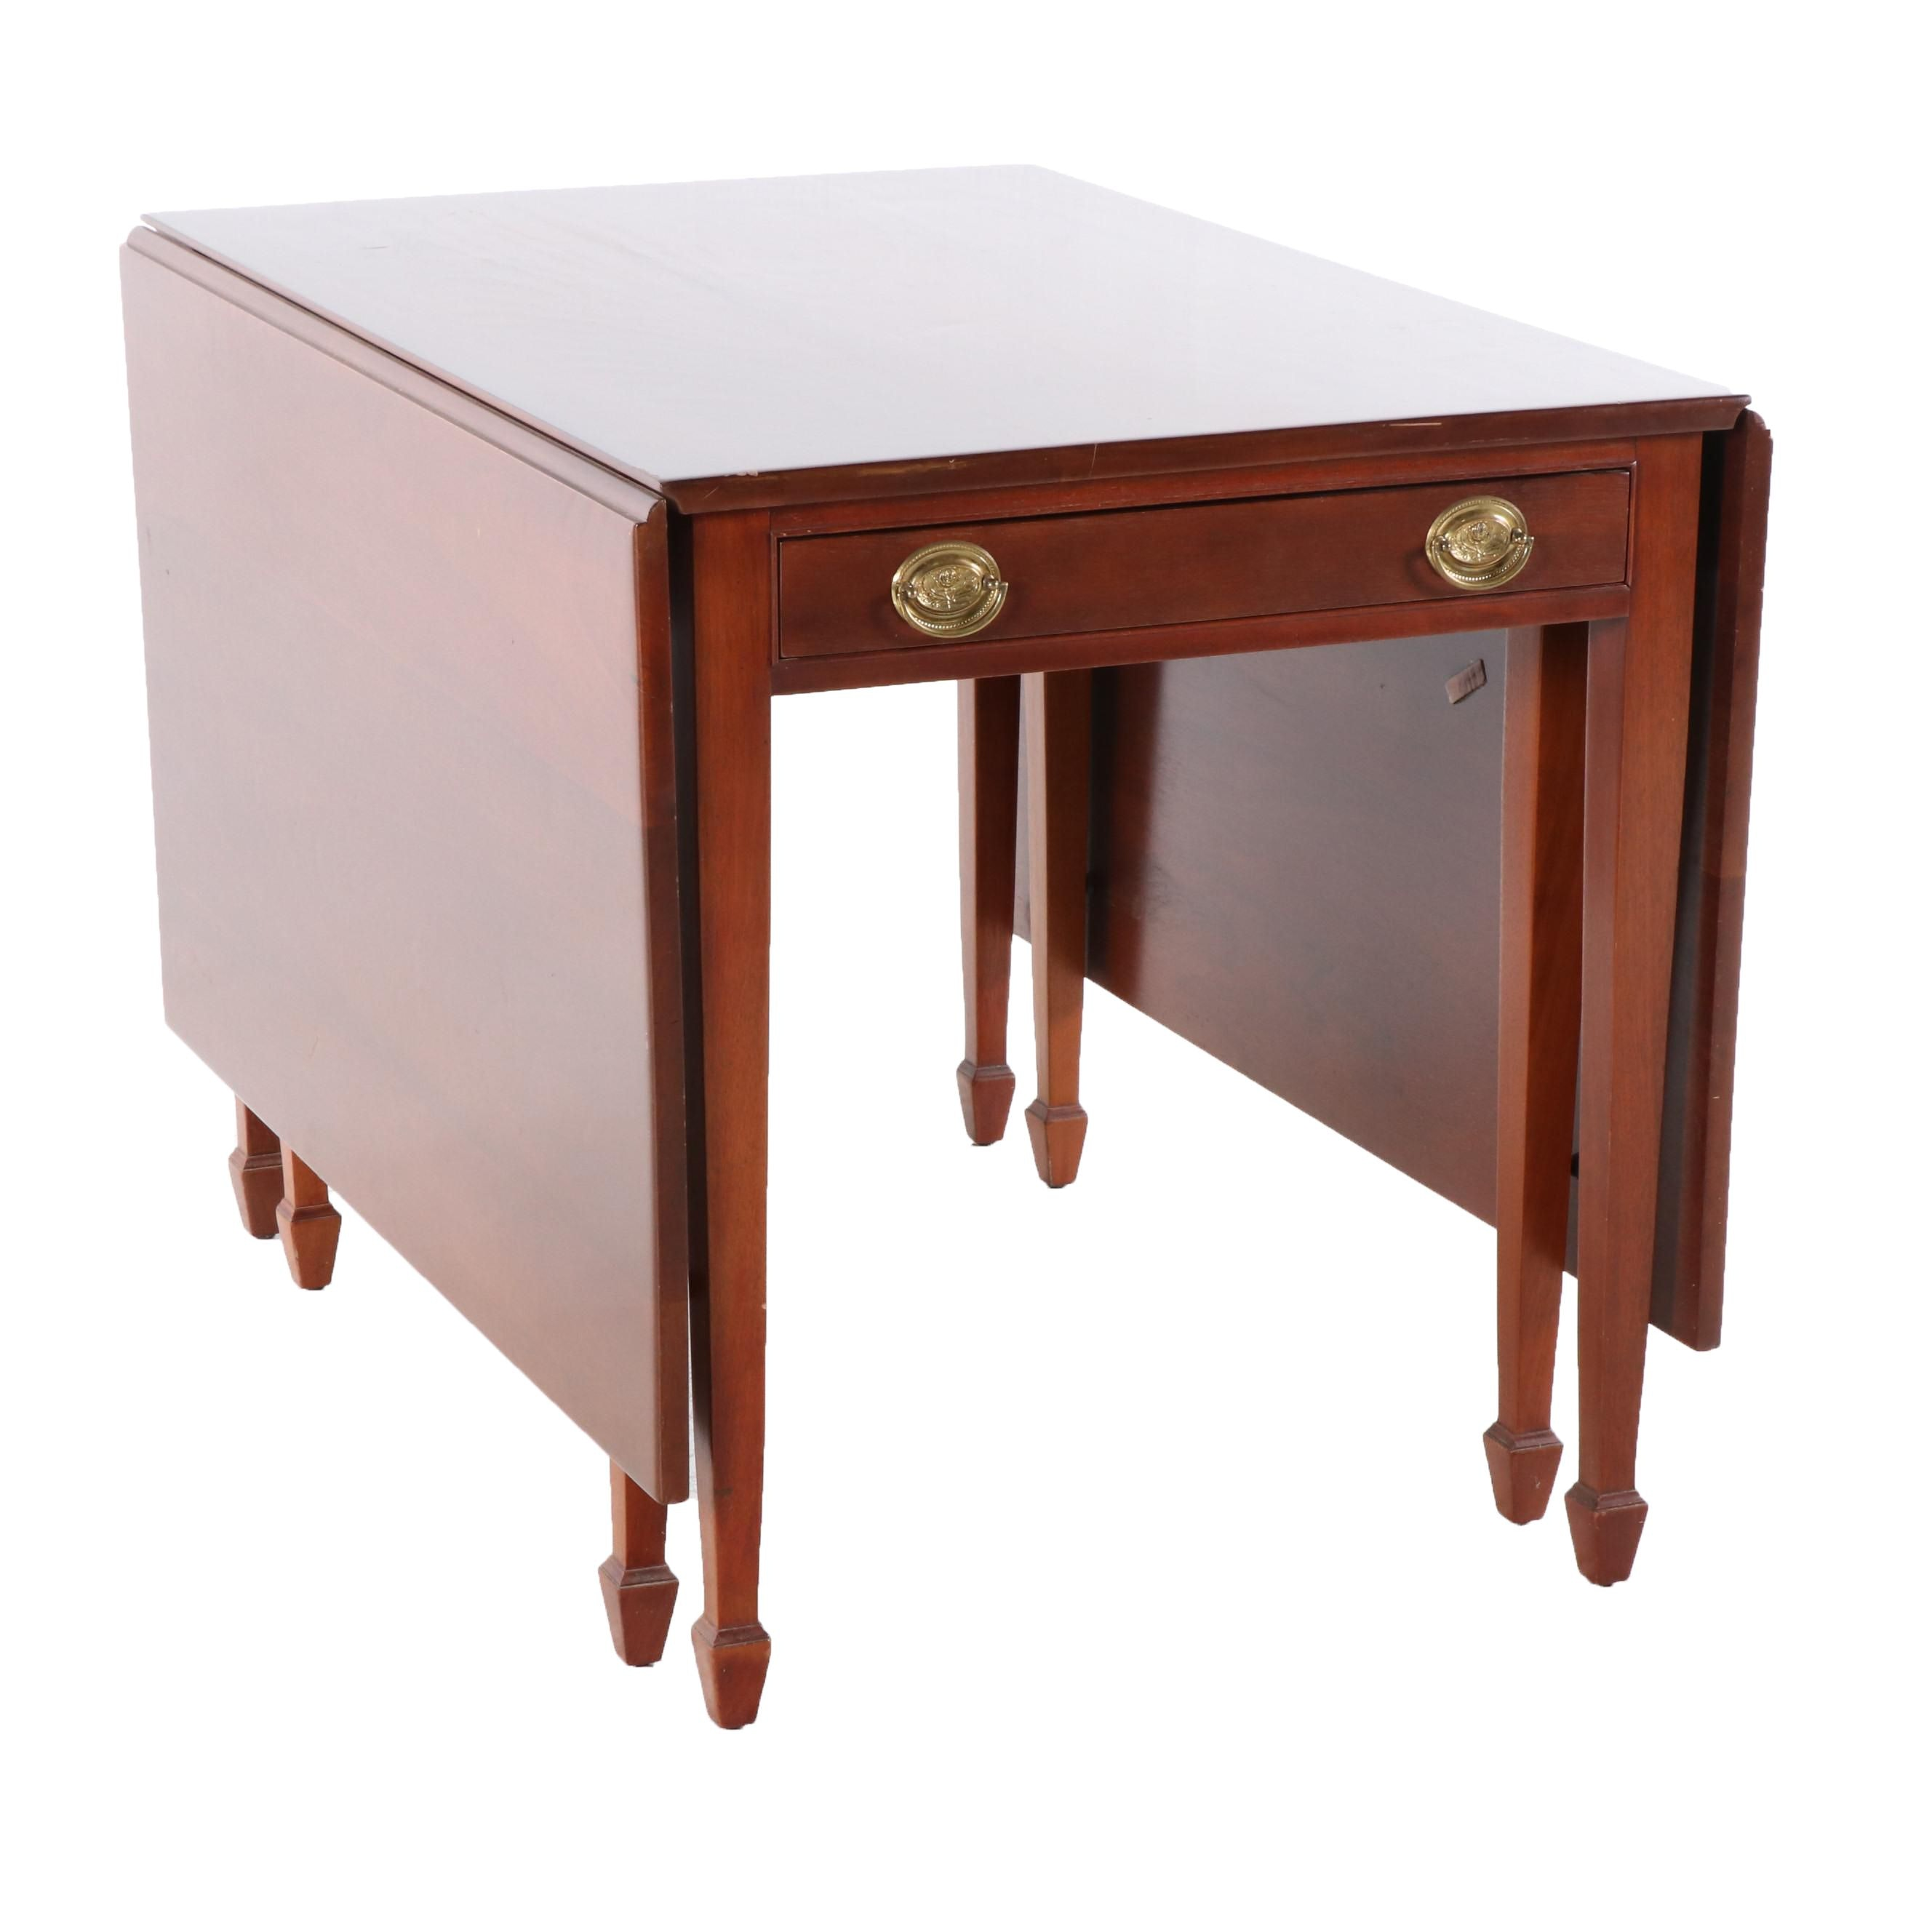 Federal Style Mahogany Drop Leaf Dining Table by The Georgetown Galleries